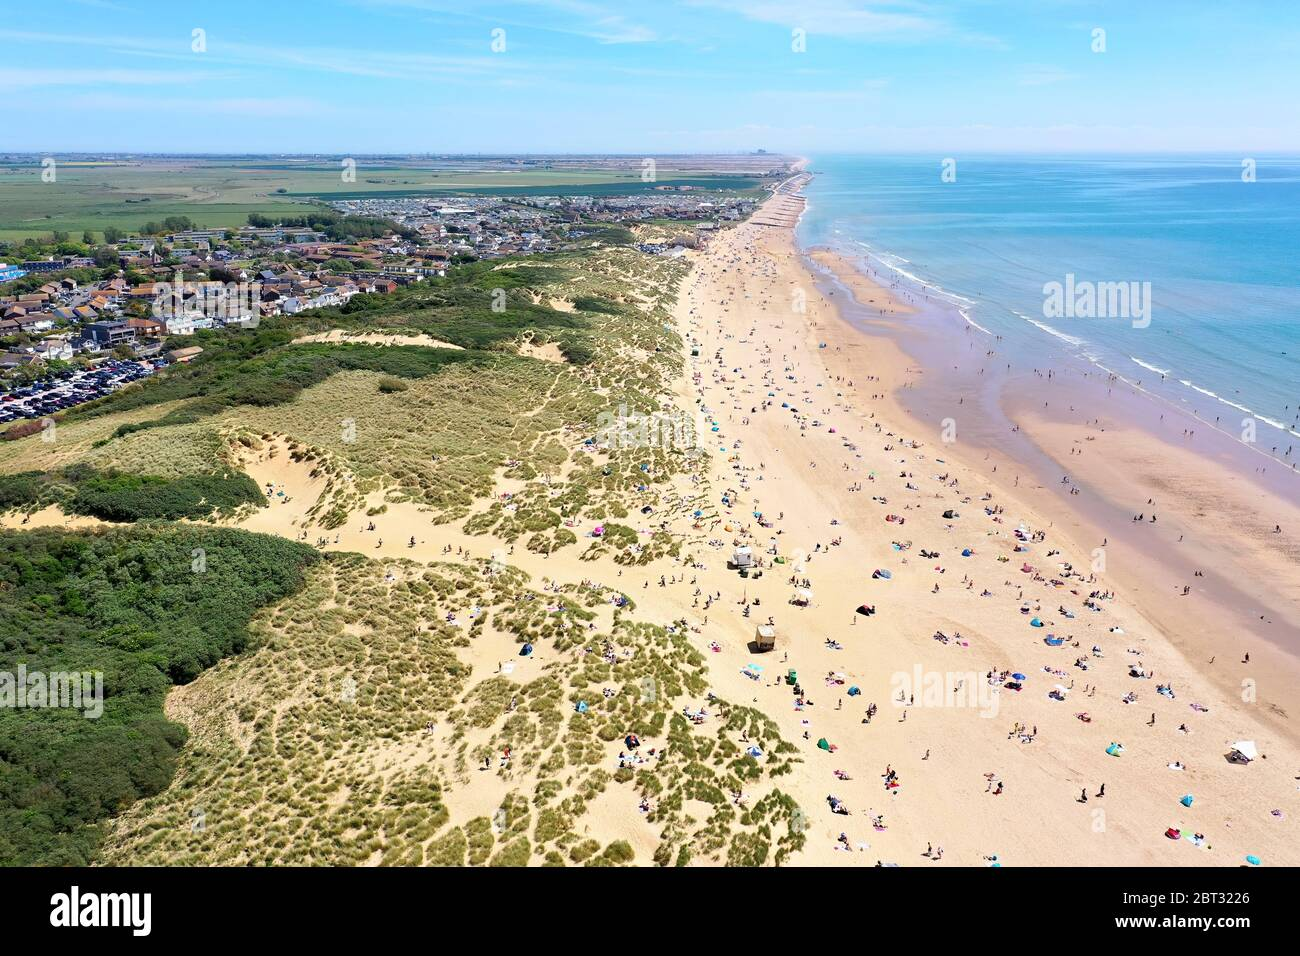 worlds most beautiful beaches, camber sands on a beautiful sunny day packed with beach lovers Stock Photo